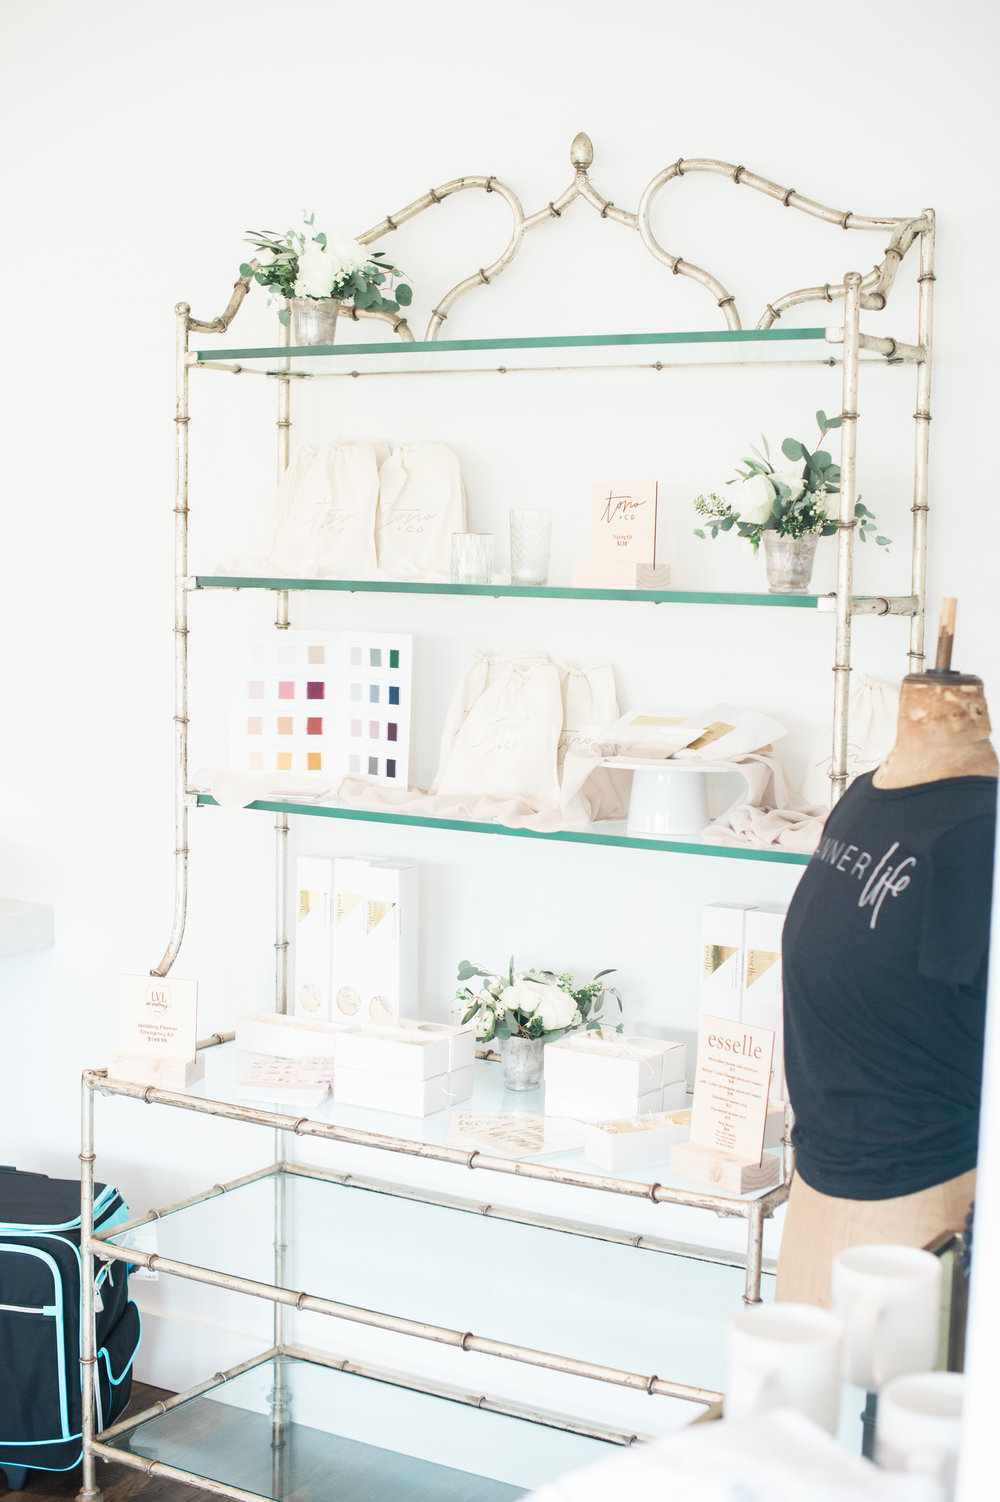 Planner Pop up Shop